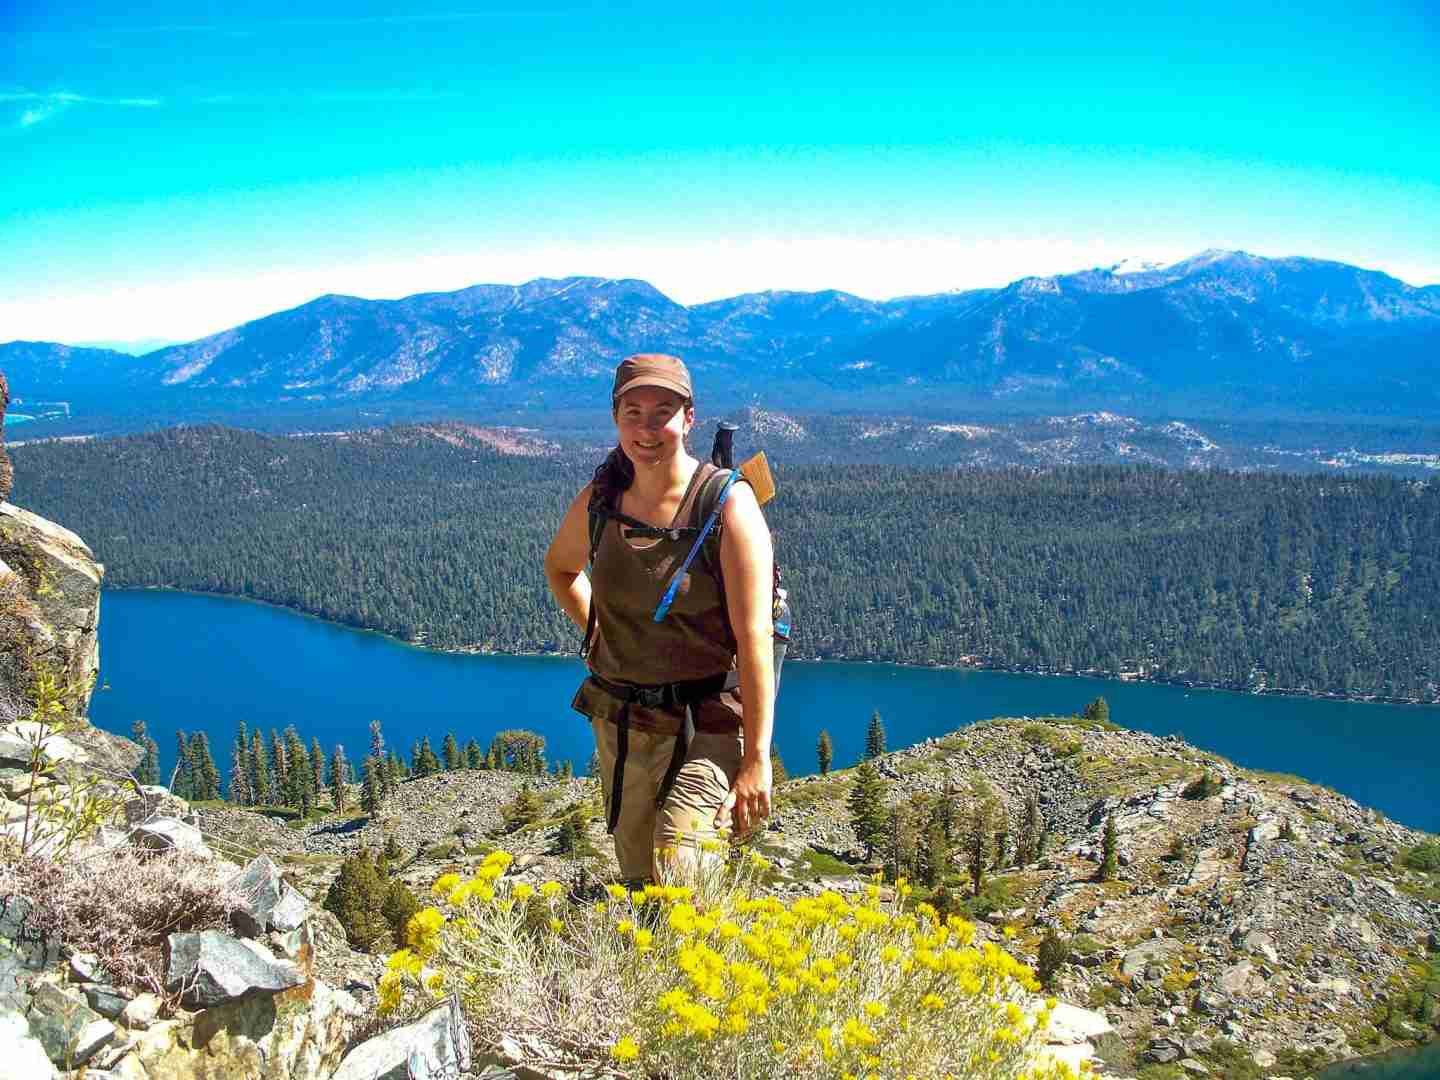 I love that hiking make me smile like this.  A female hiker poses on top of a mountain standing behind yellow flowers with Lake Tahoe and mountains behind her.